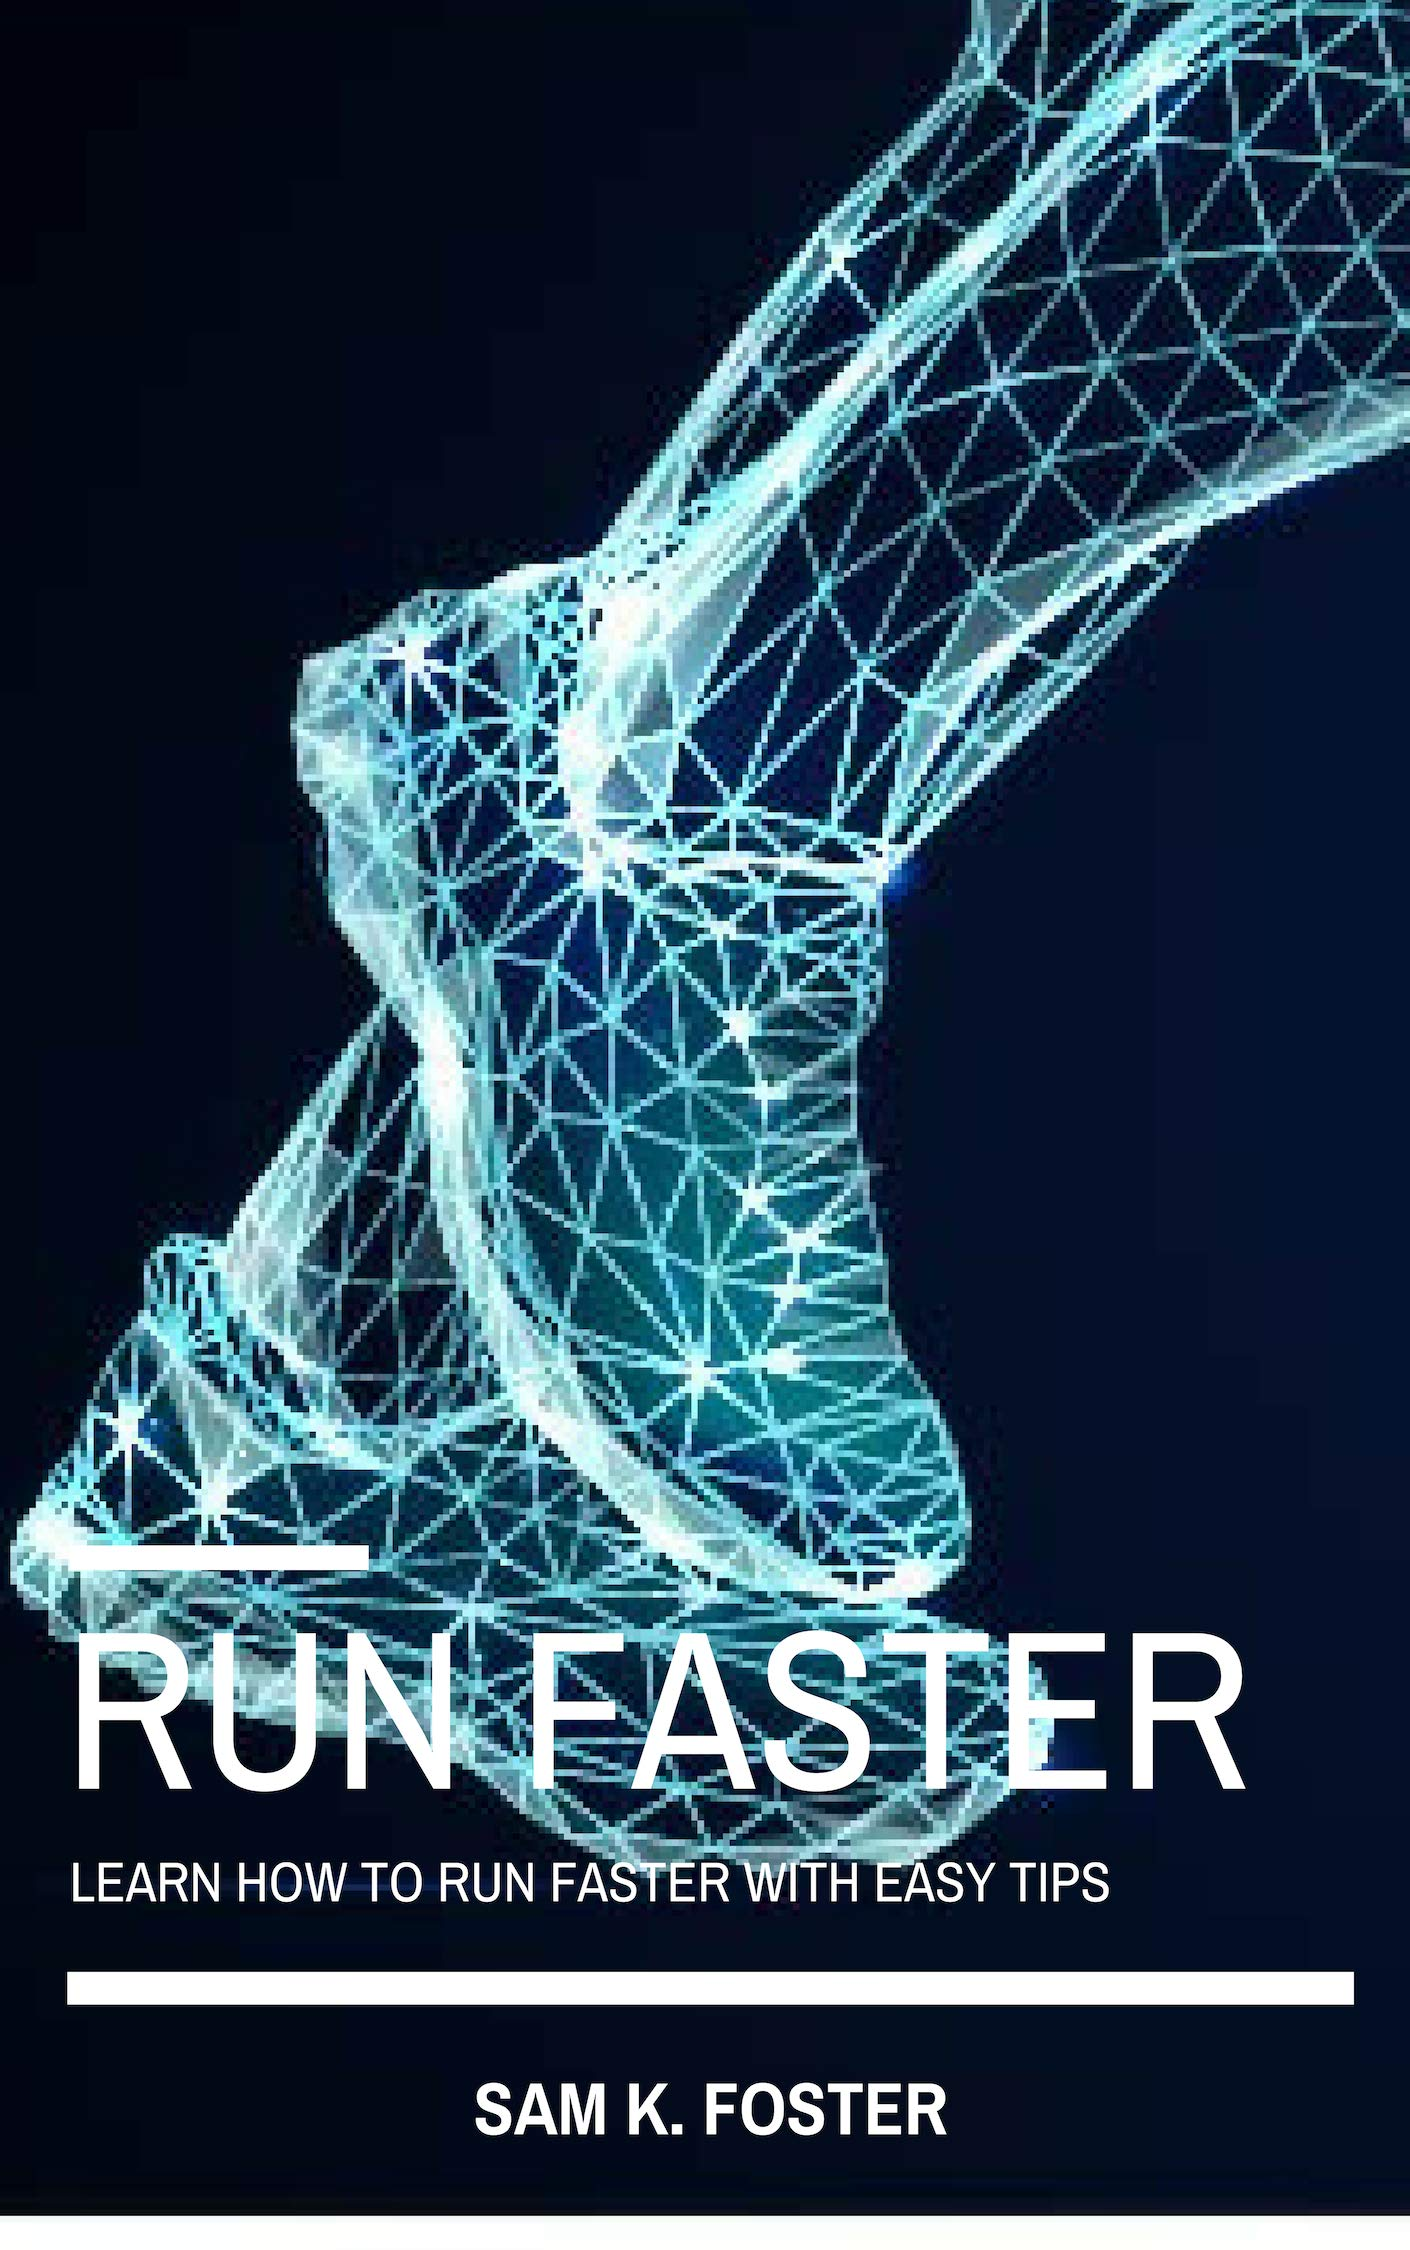 Run Faster: Learn How to Run Faster With Easy Tips